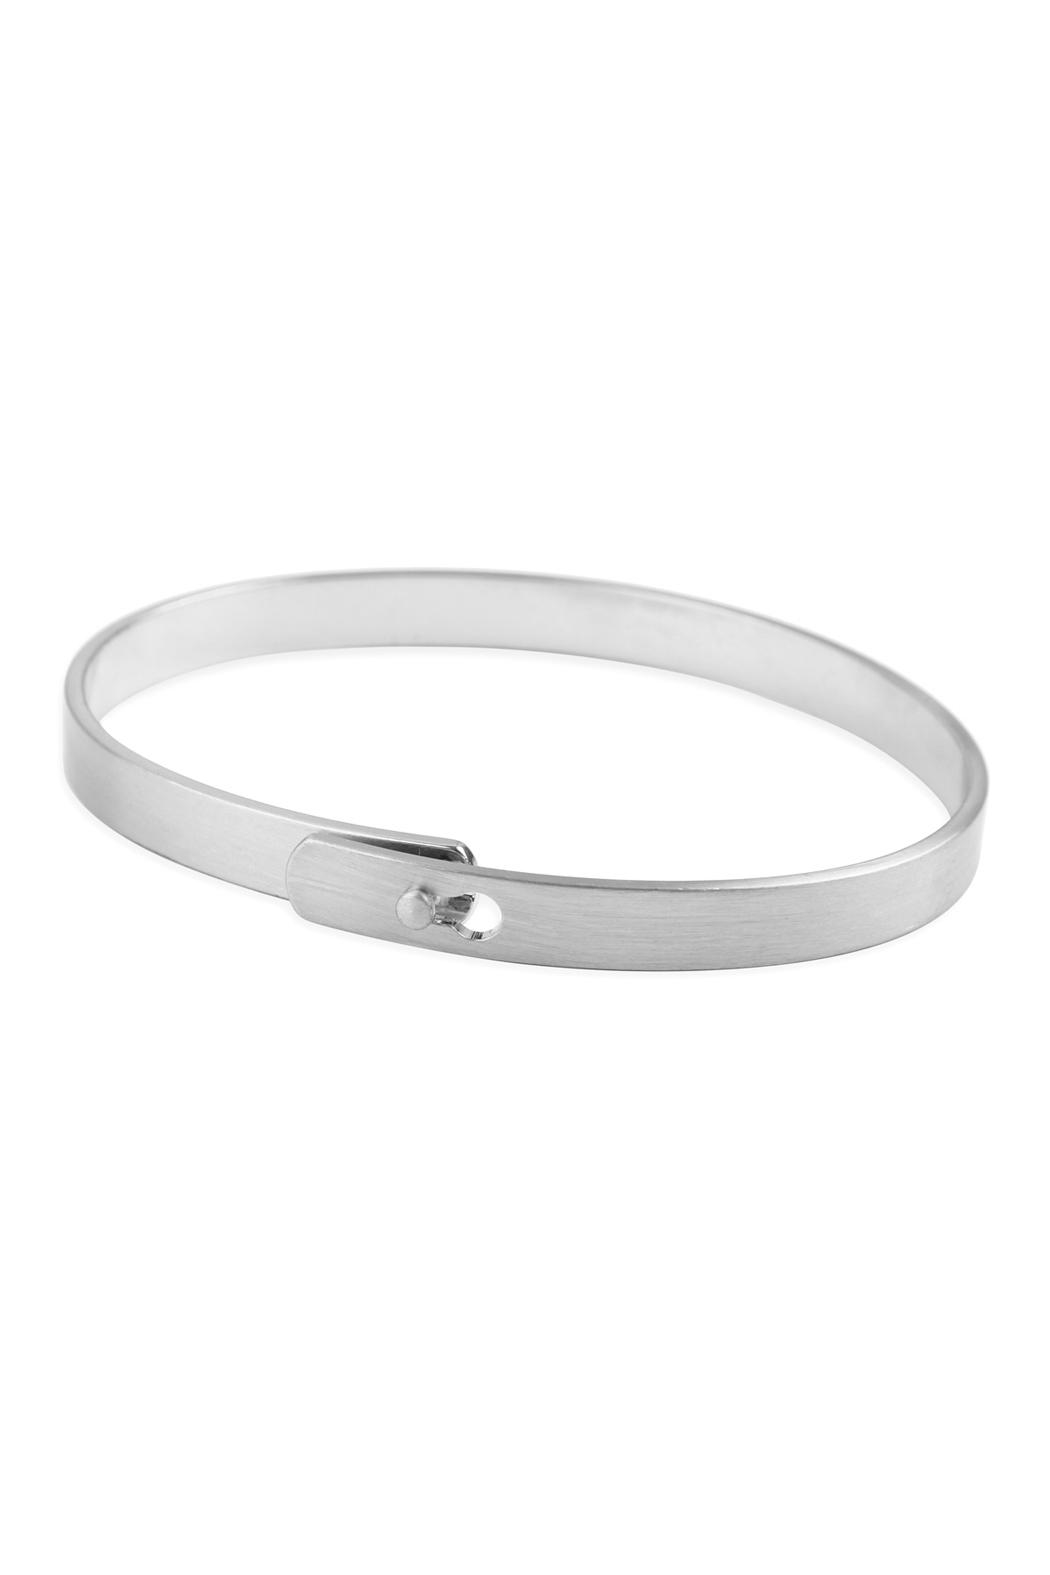 Riah Fashion Blessed-Inspiration Metal-Cuff-Bracelet - Front Full Image